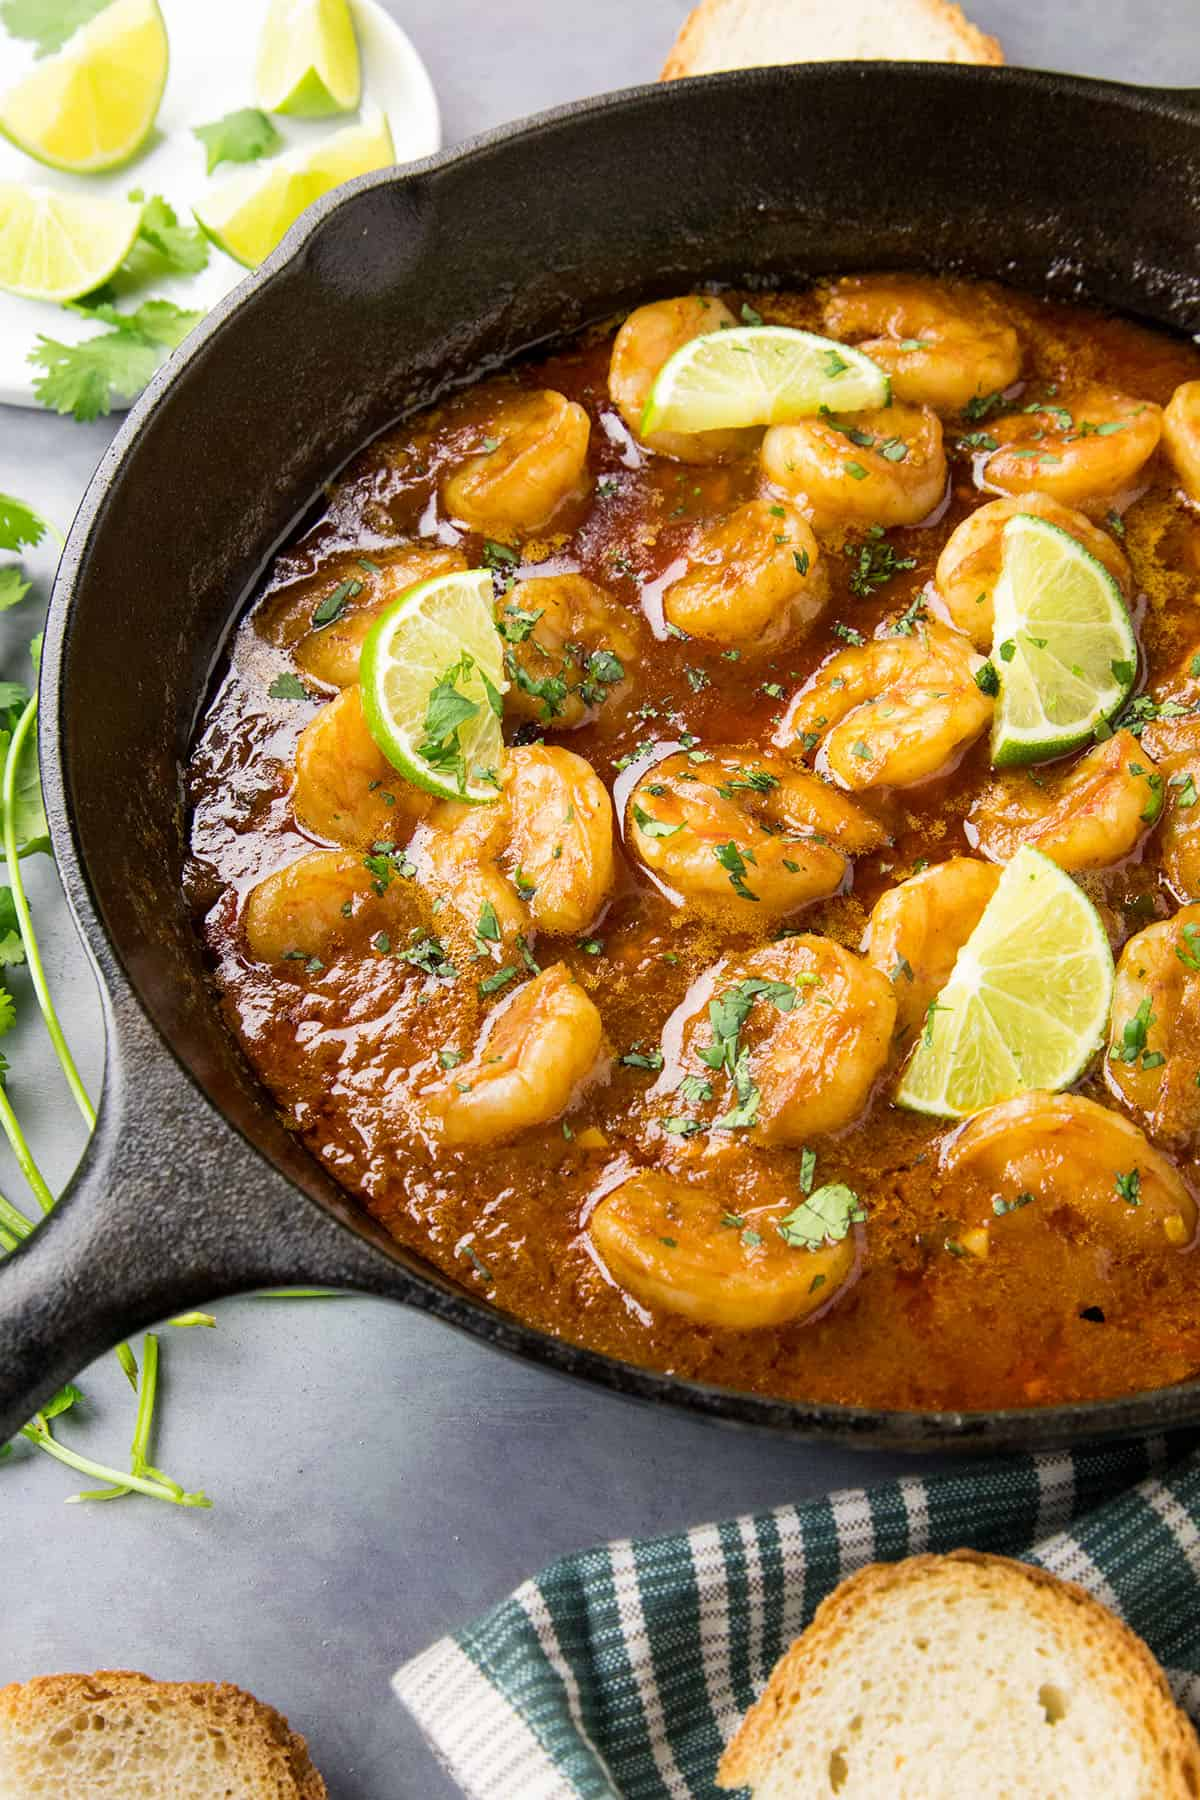 Shrimp in Fiery Chipotle-Tequila Sauce